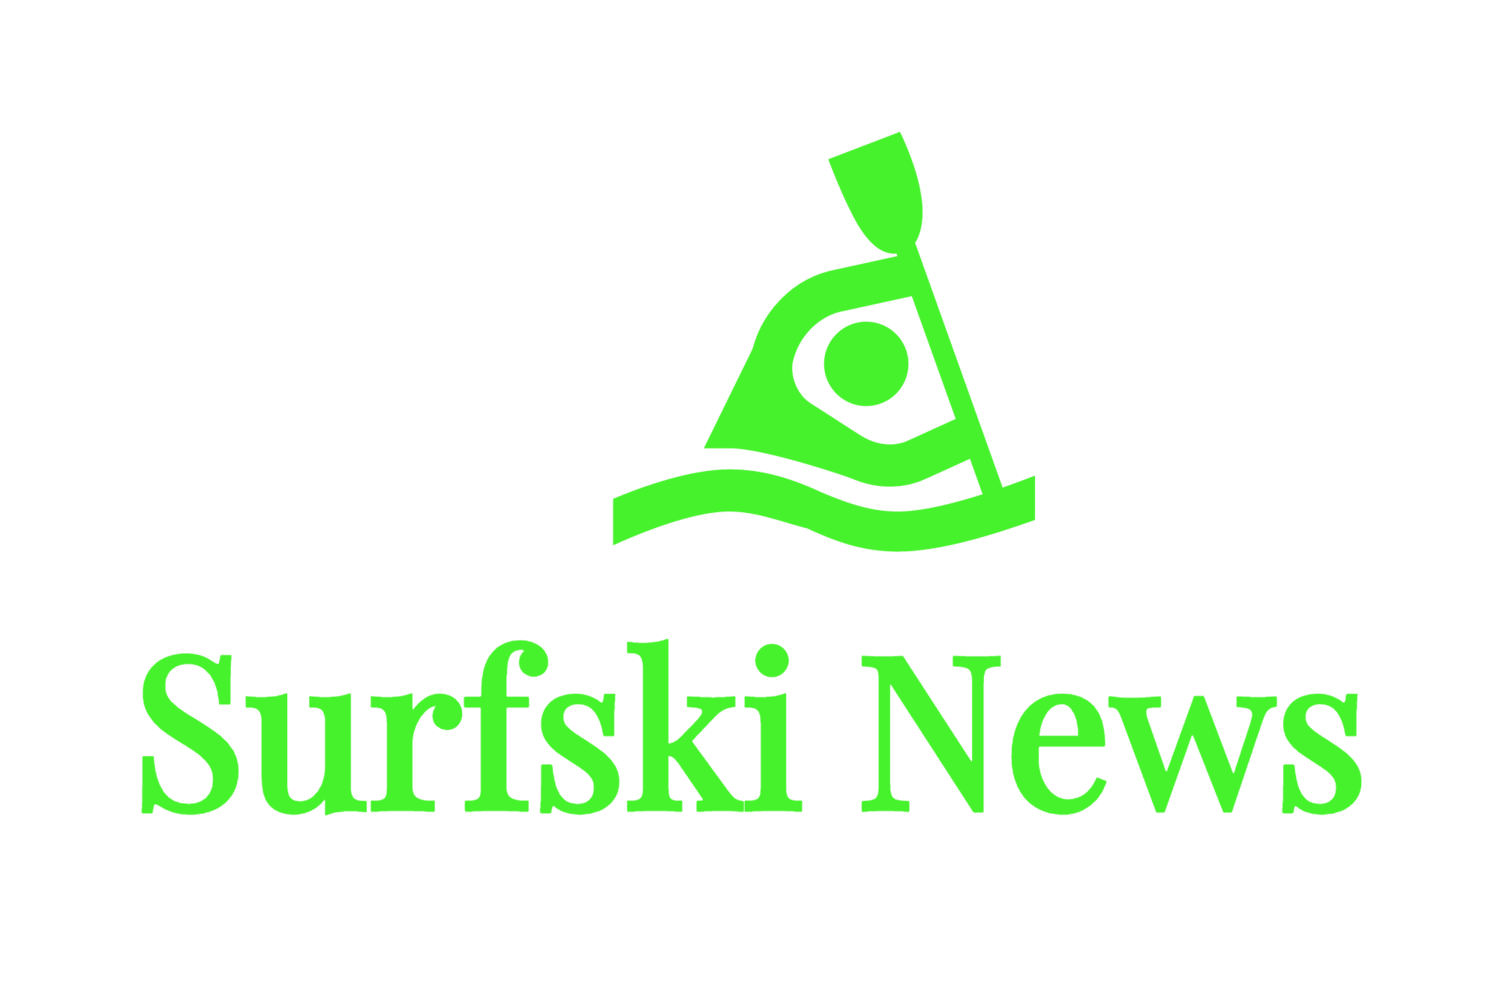 SURFSKI NEWS